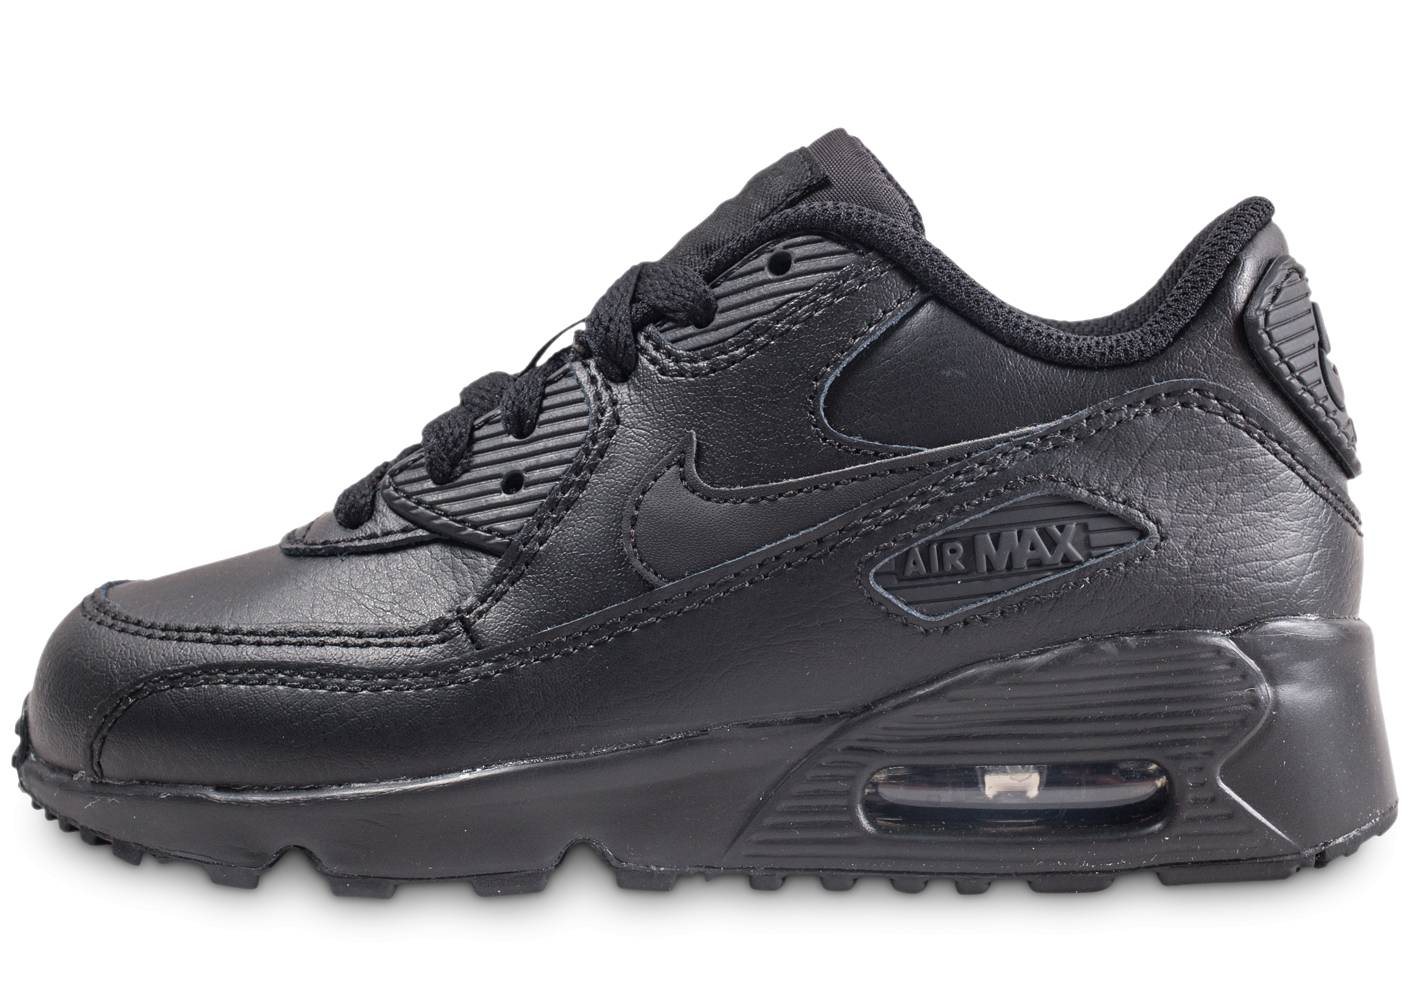 Nike Baskets Nike Nike Air Max 90 Leather Pre-school Noire Enfant